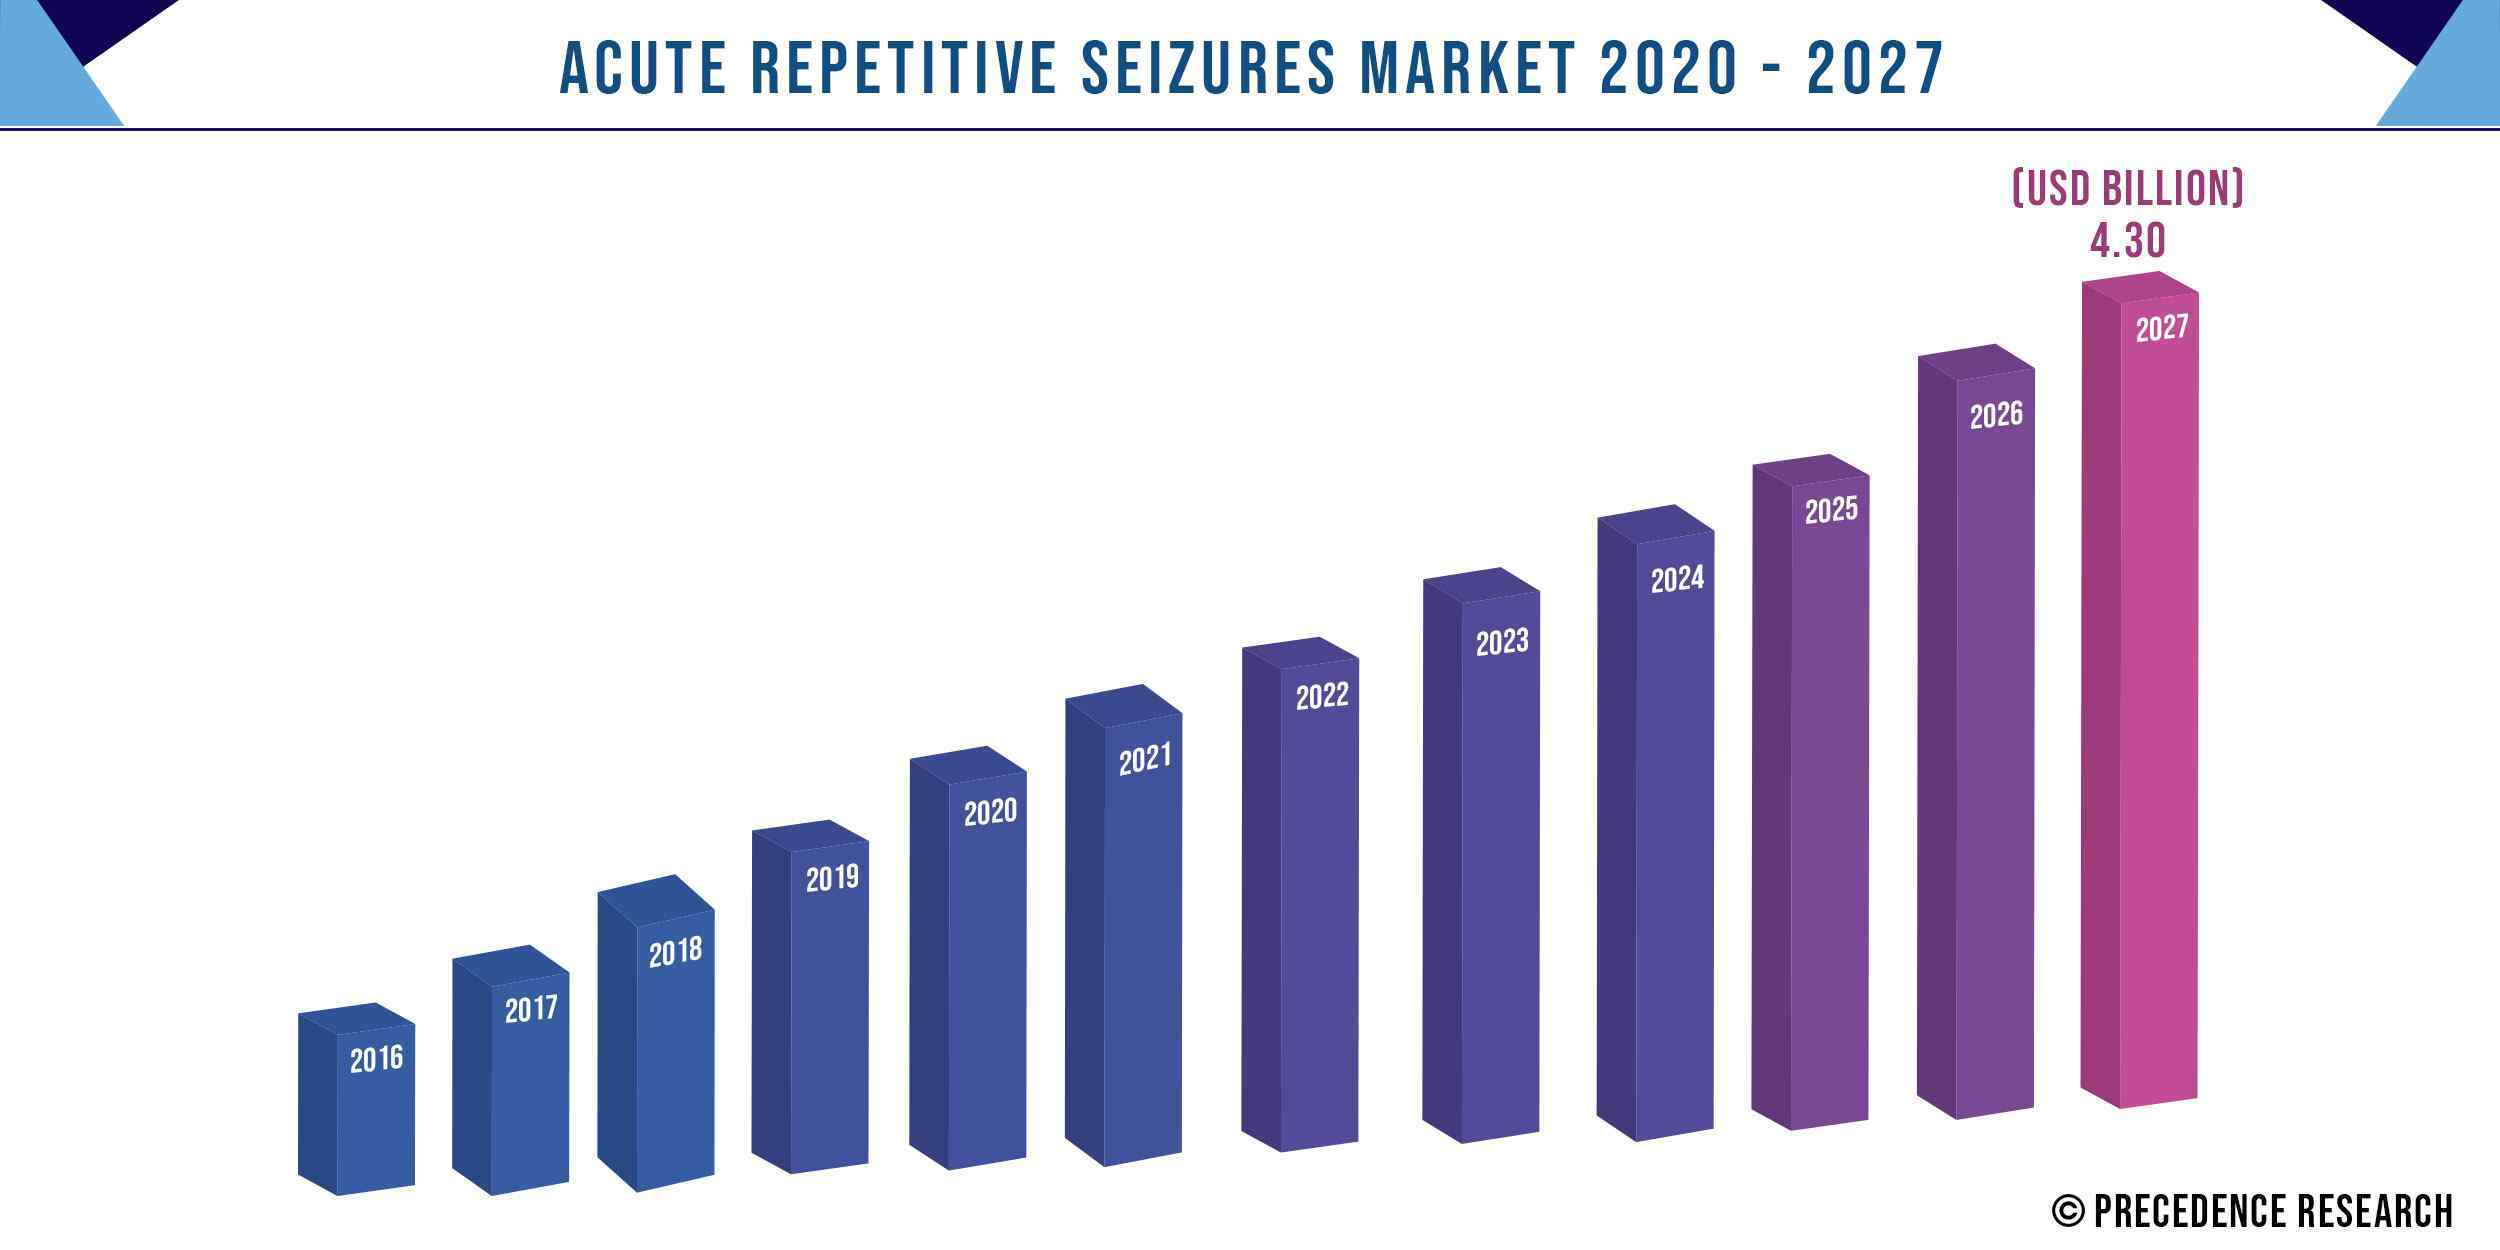 Acute Repetitive Seizures Market Size 2016 to 2027